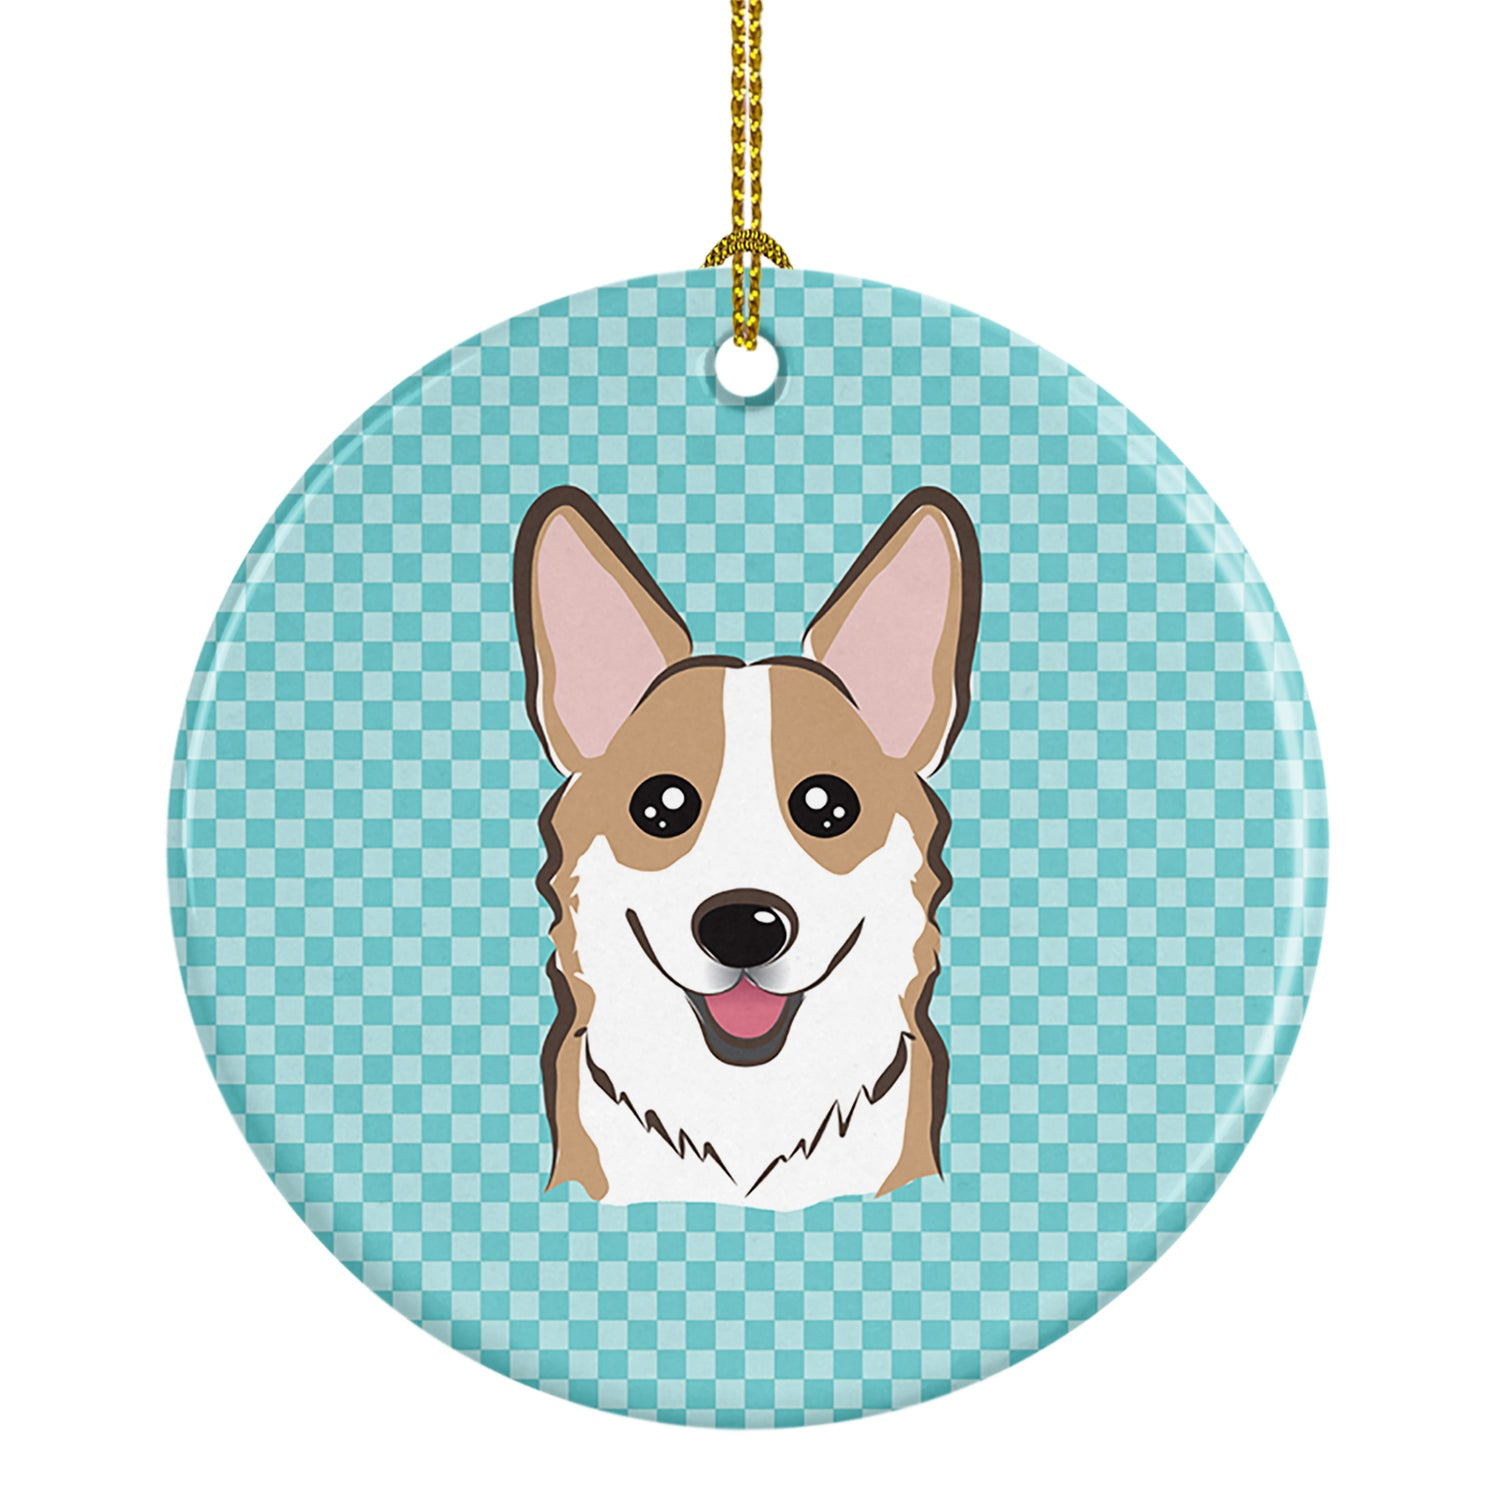 Checkerboard Blue Corgi Ceramic Ornament BB1191CO1 by Caroline's Treasures